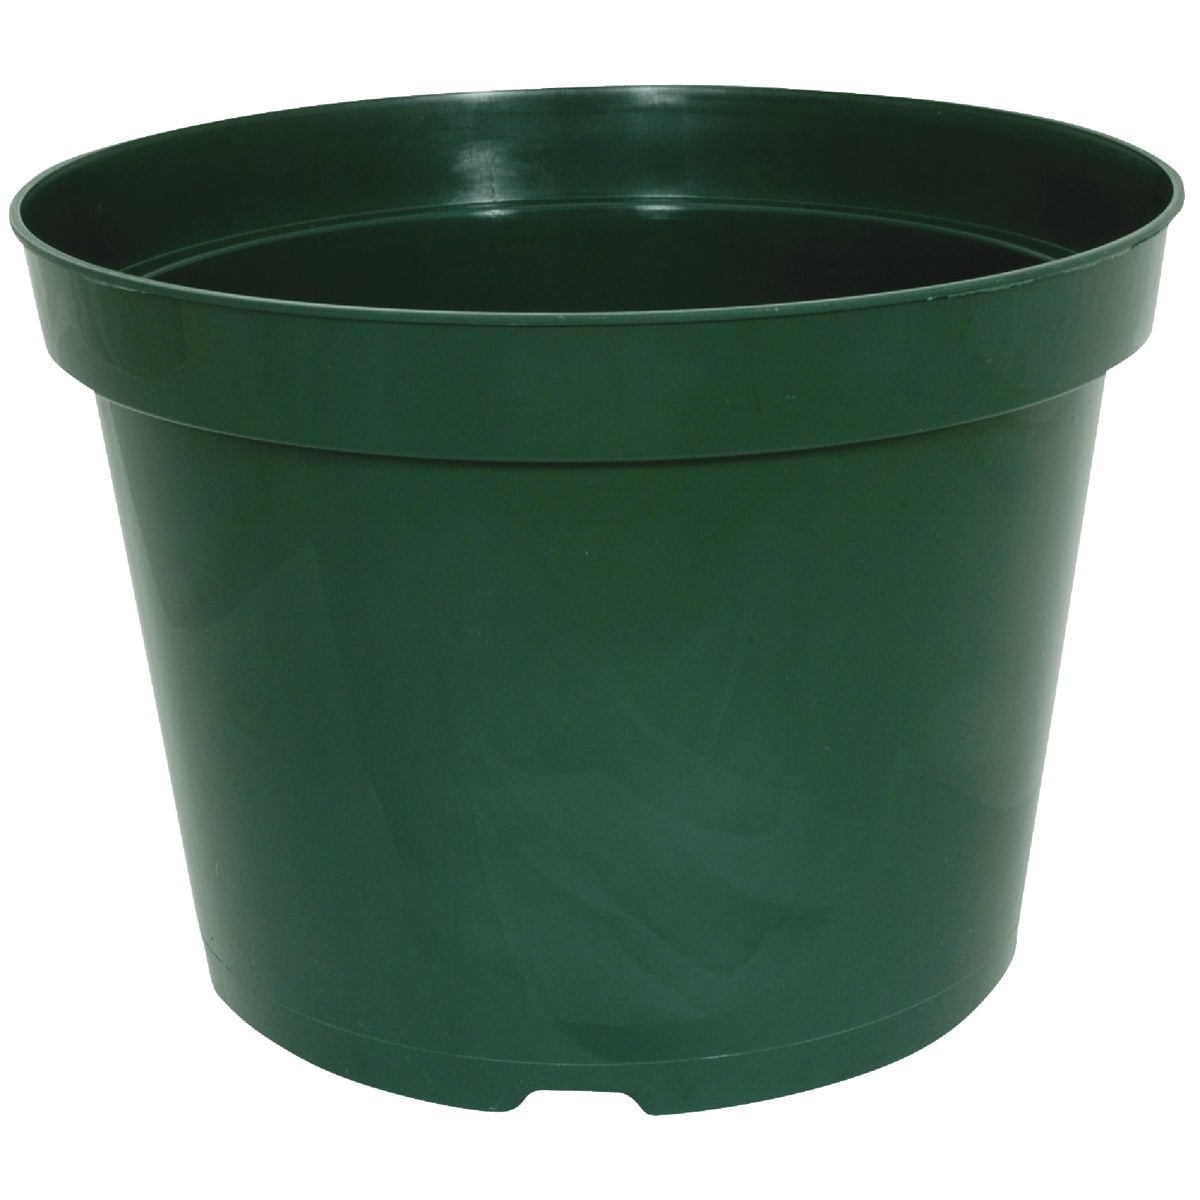 "4"" GREEN GROWER POT - STR0400 by Myers Industries Inc"